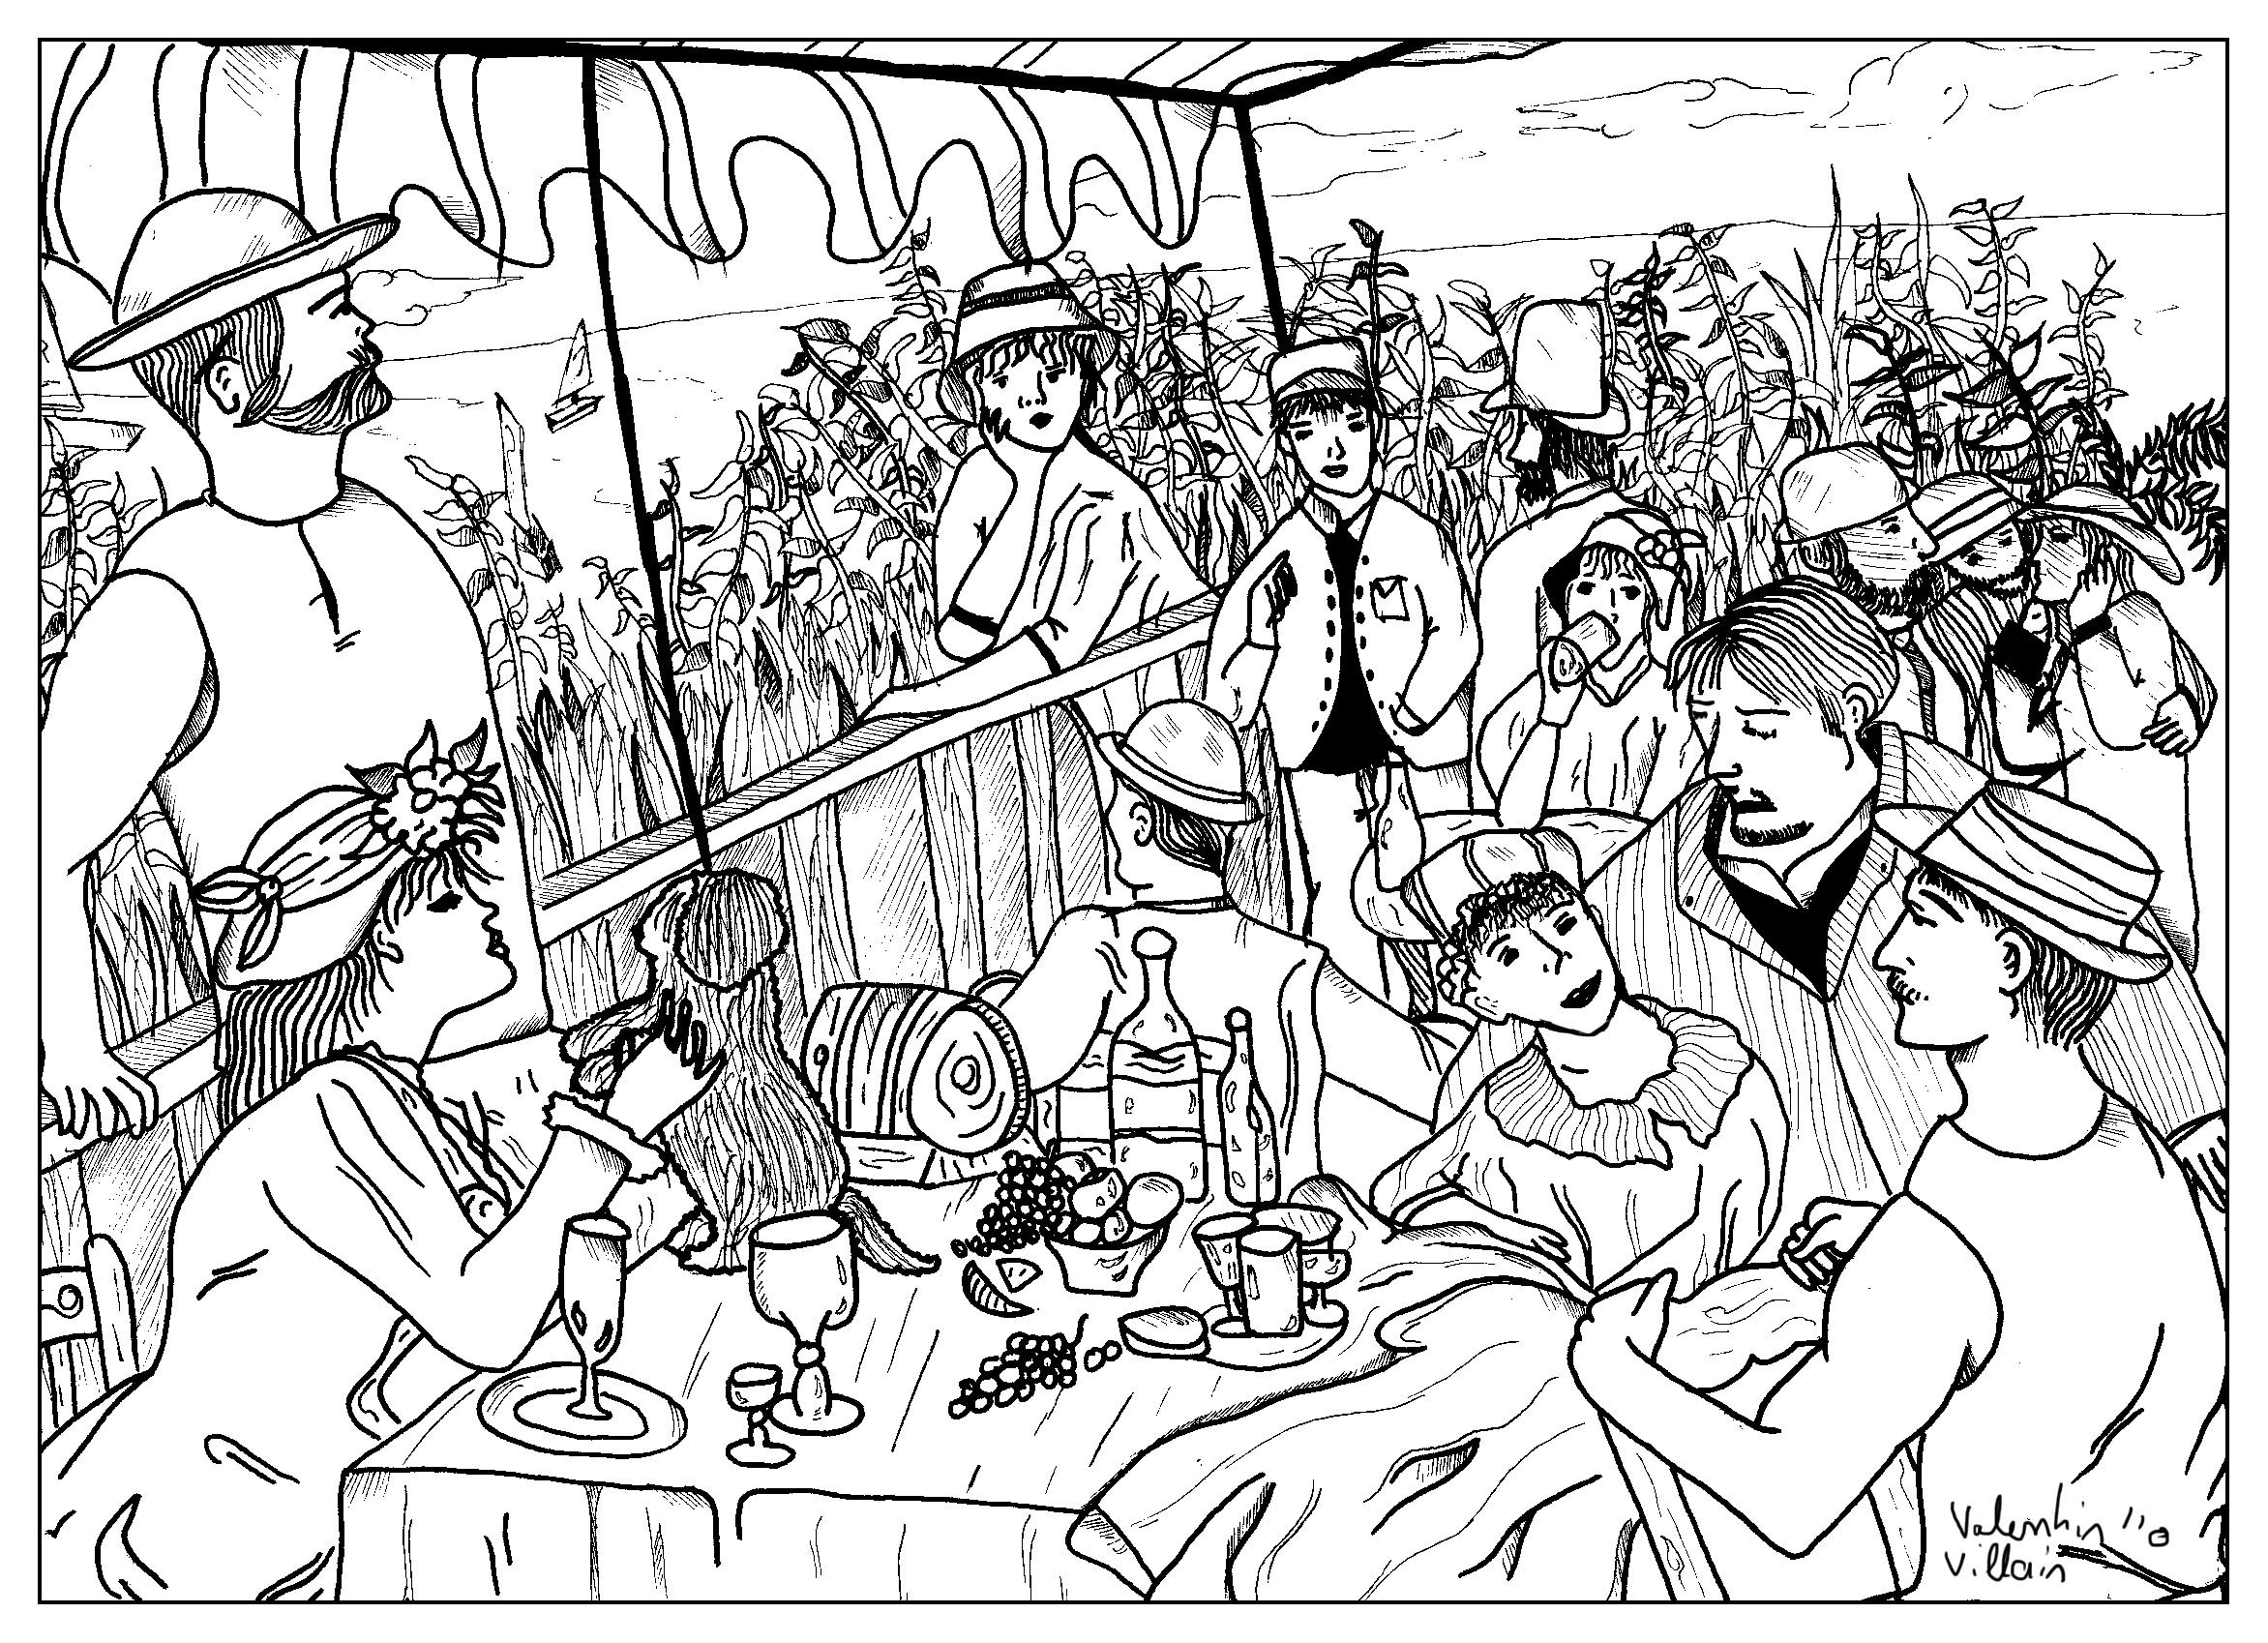 Colorear Cuadros Famosos Impressionist Coloring Pages At Getdrawings Free For